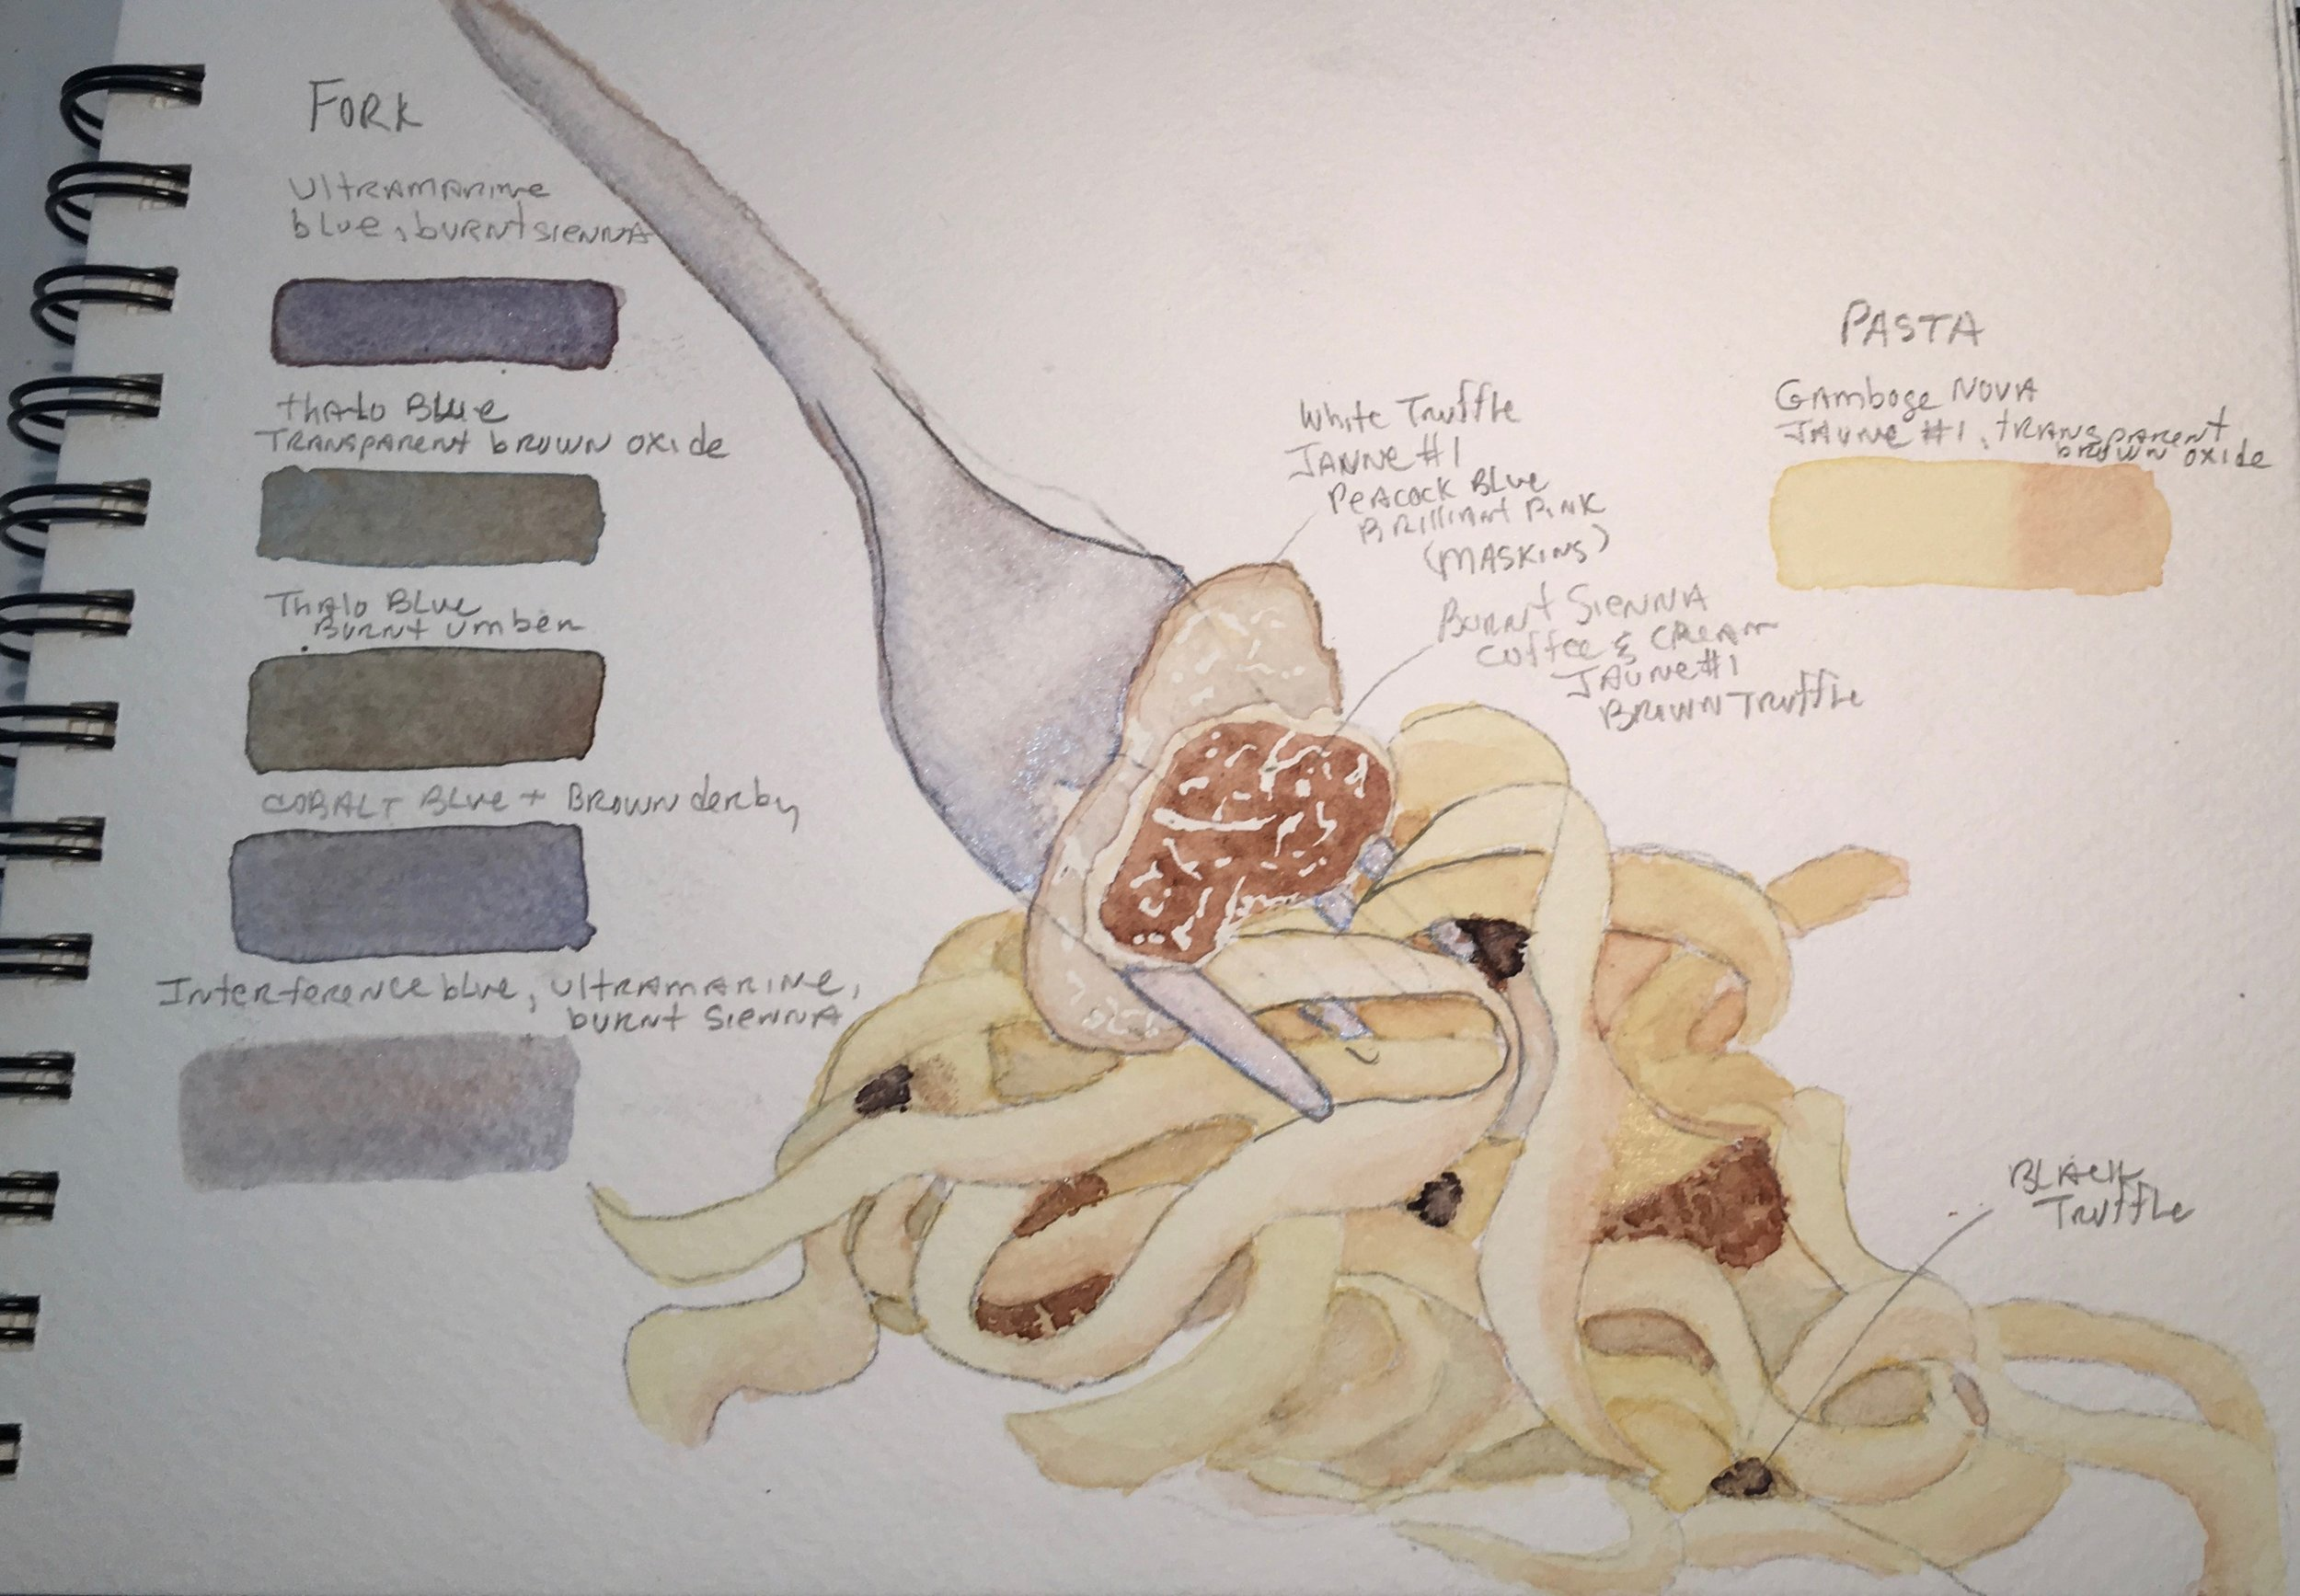 Transferred the sketch, looked at some real pasta and added pasta on the plate. Played with colors for the fork, pasta and three kinds of truffles. Think I am ready to trace and transfer to the watercolor paper - yikes!